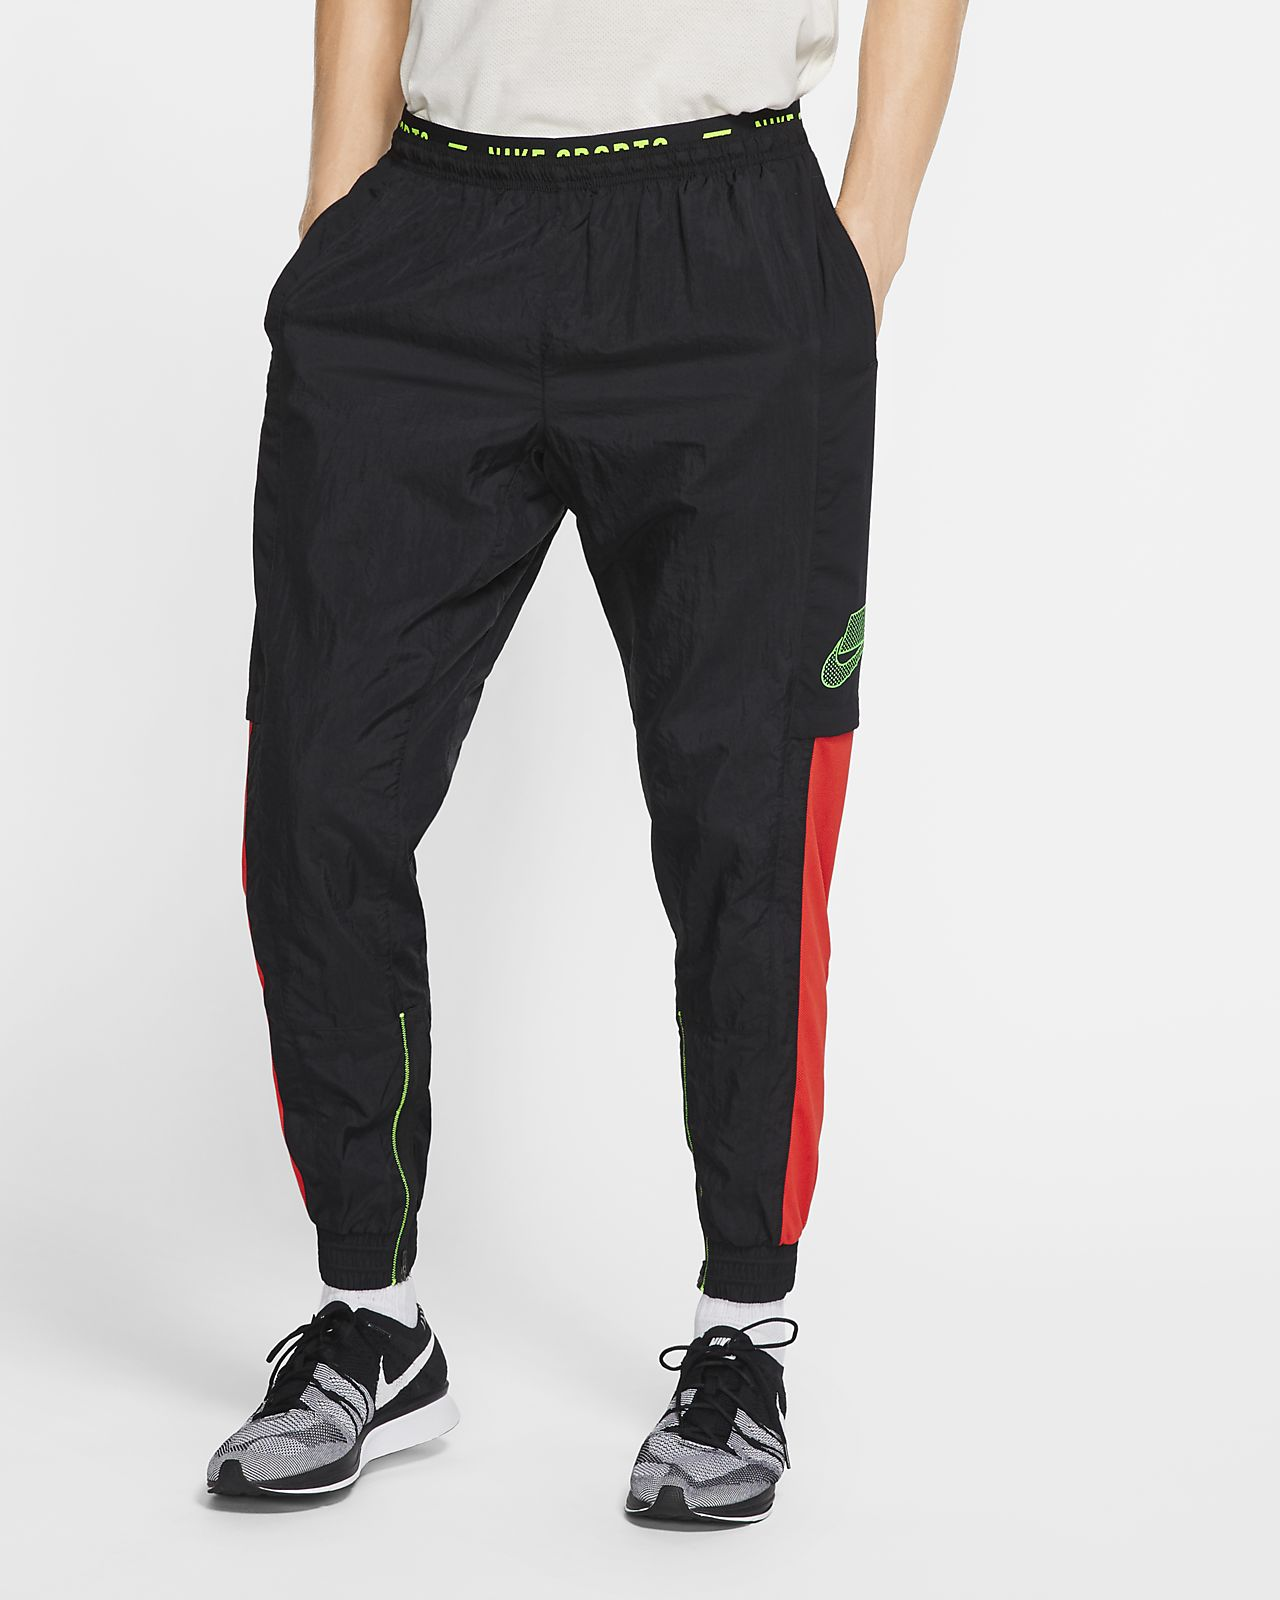 Pantaloni da training Nike Dri FIT Flex Sport Clash Uomo